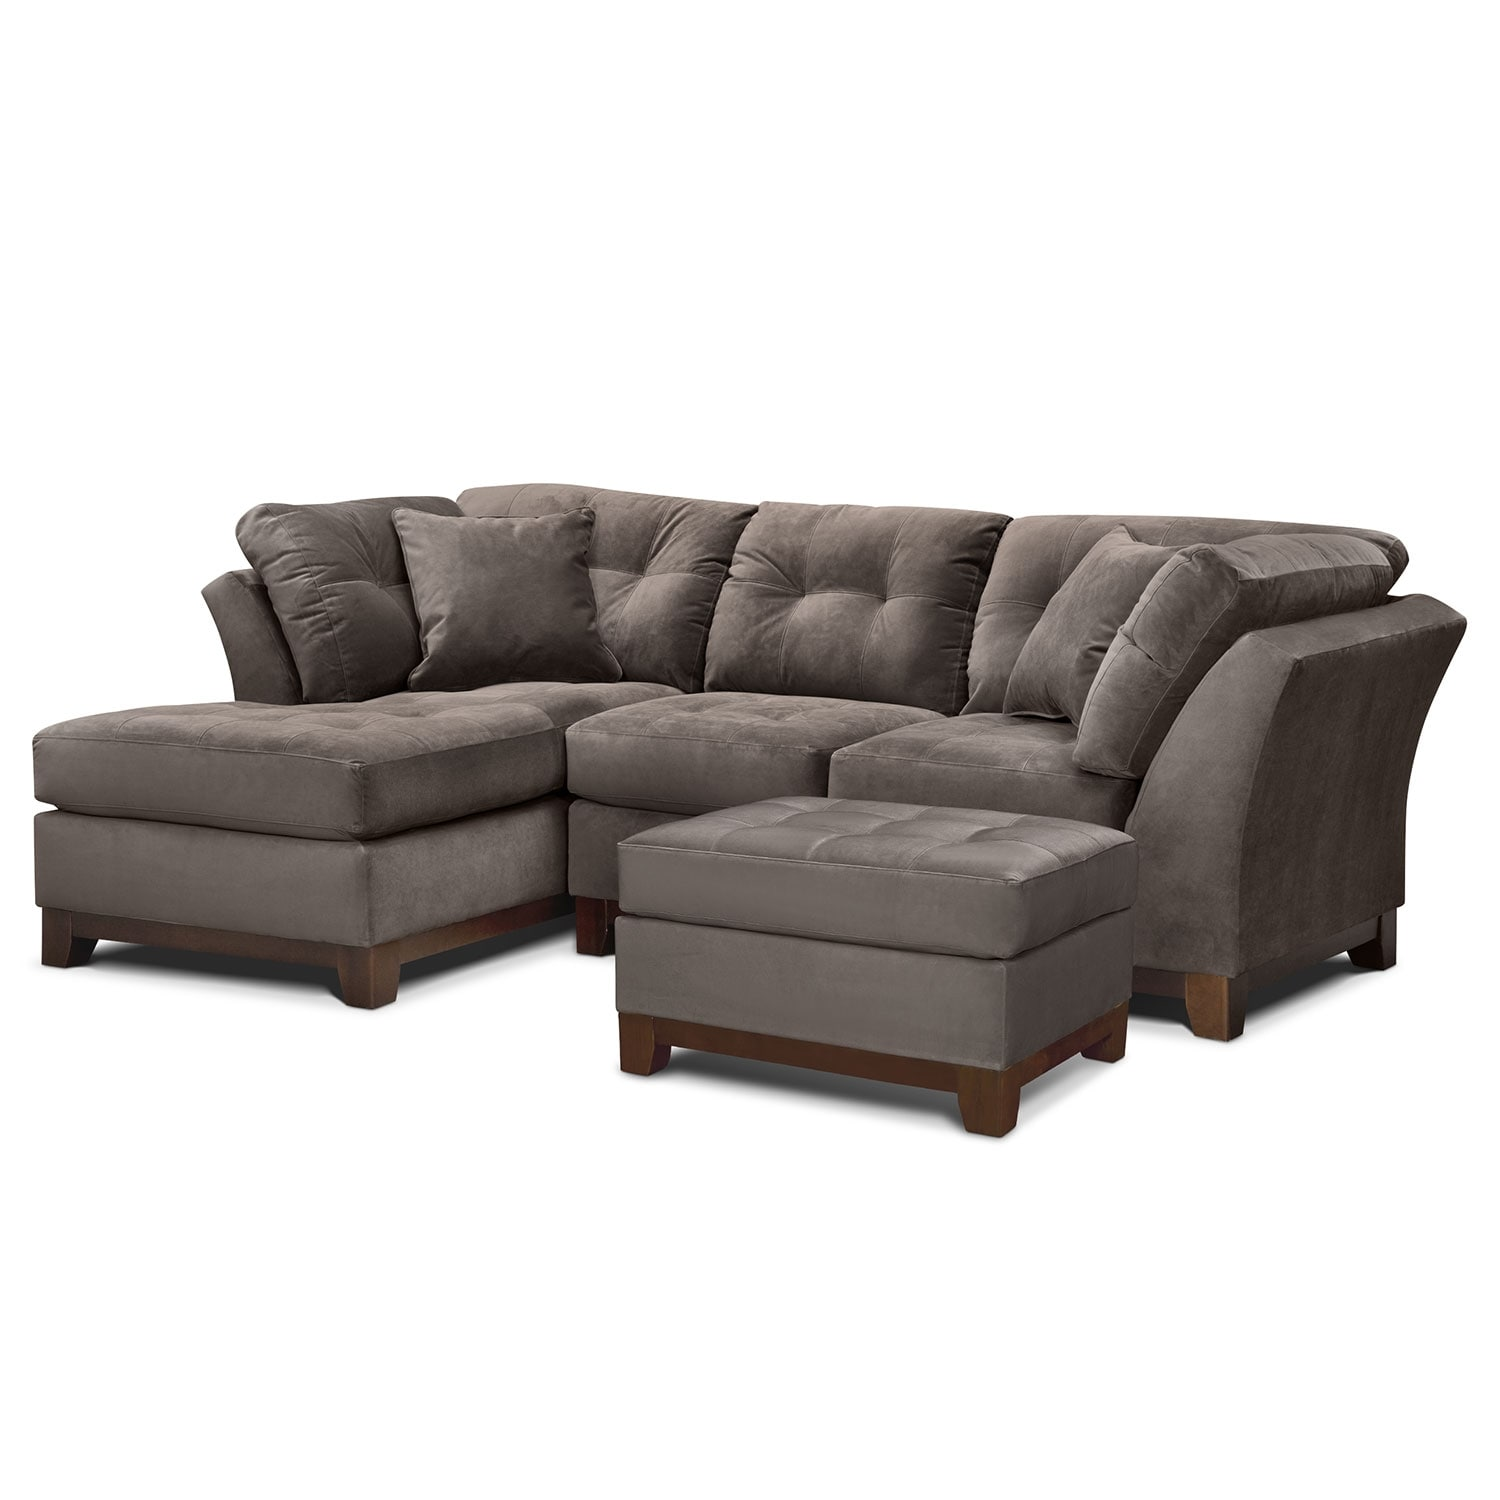 Living Room Furniture - Solace Gray II 2 Pc. Sectional (Alternate) and Ottoman